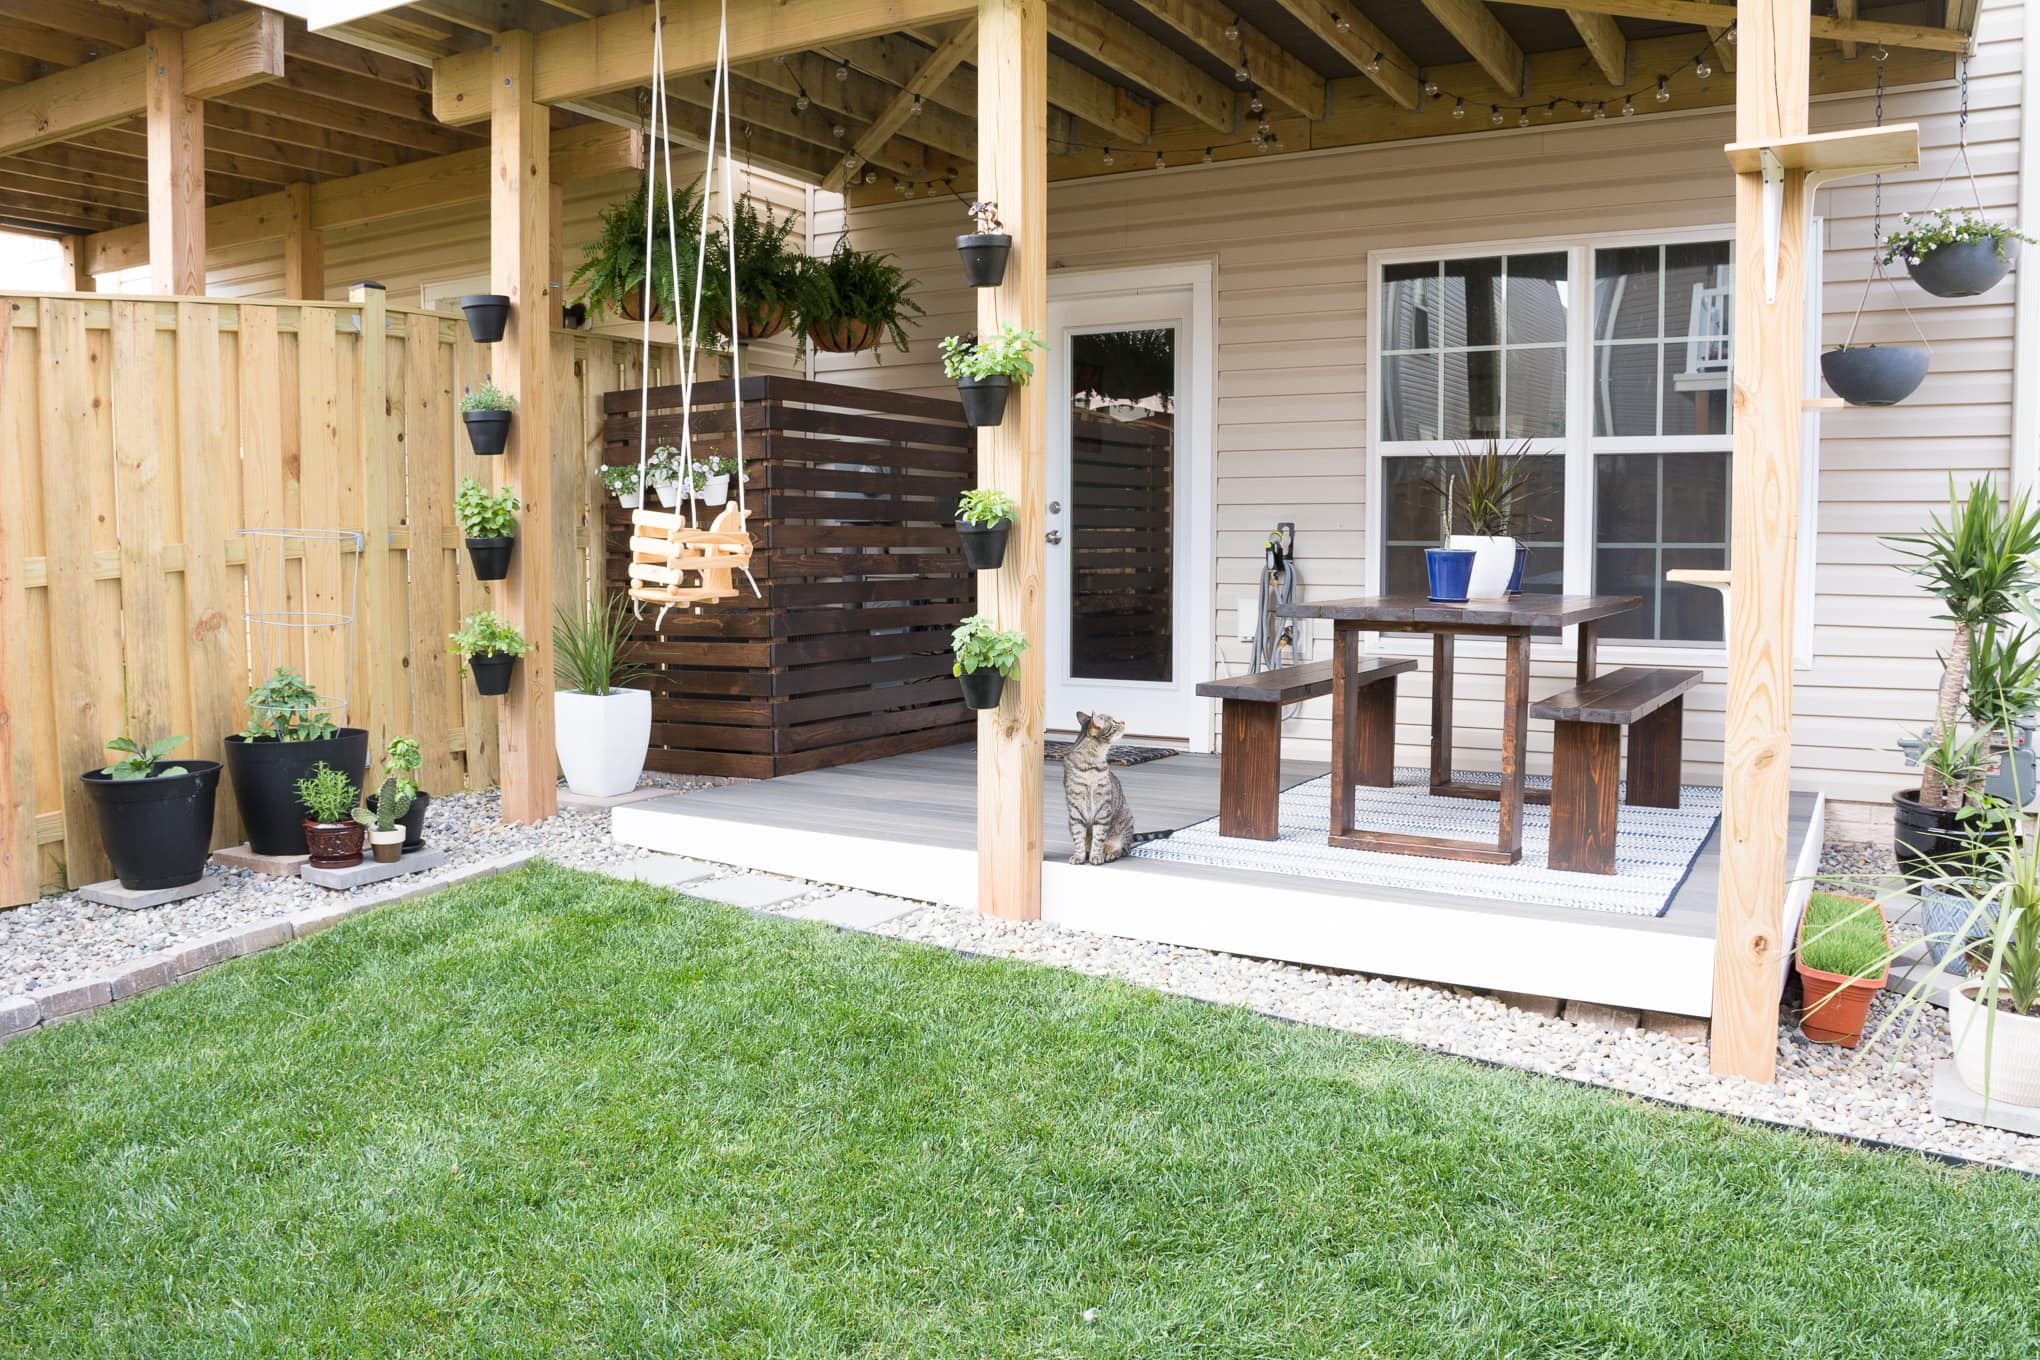 Modern design ideas for a small backyard // DIY rock landscaping around a gray Trex platform deck // Hanging herbs // DIY outdoor cat perches // DIY HVAC unit screen // small garden ideas // hanging ferns on a patio